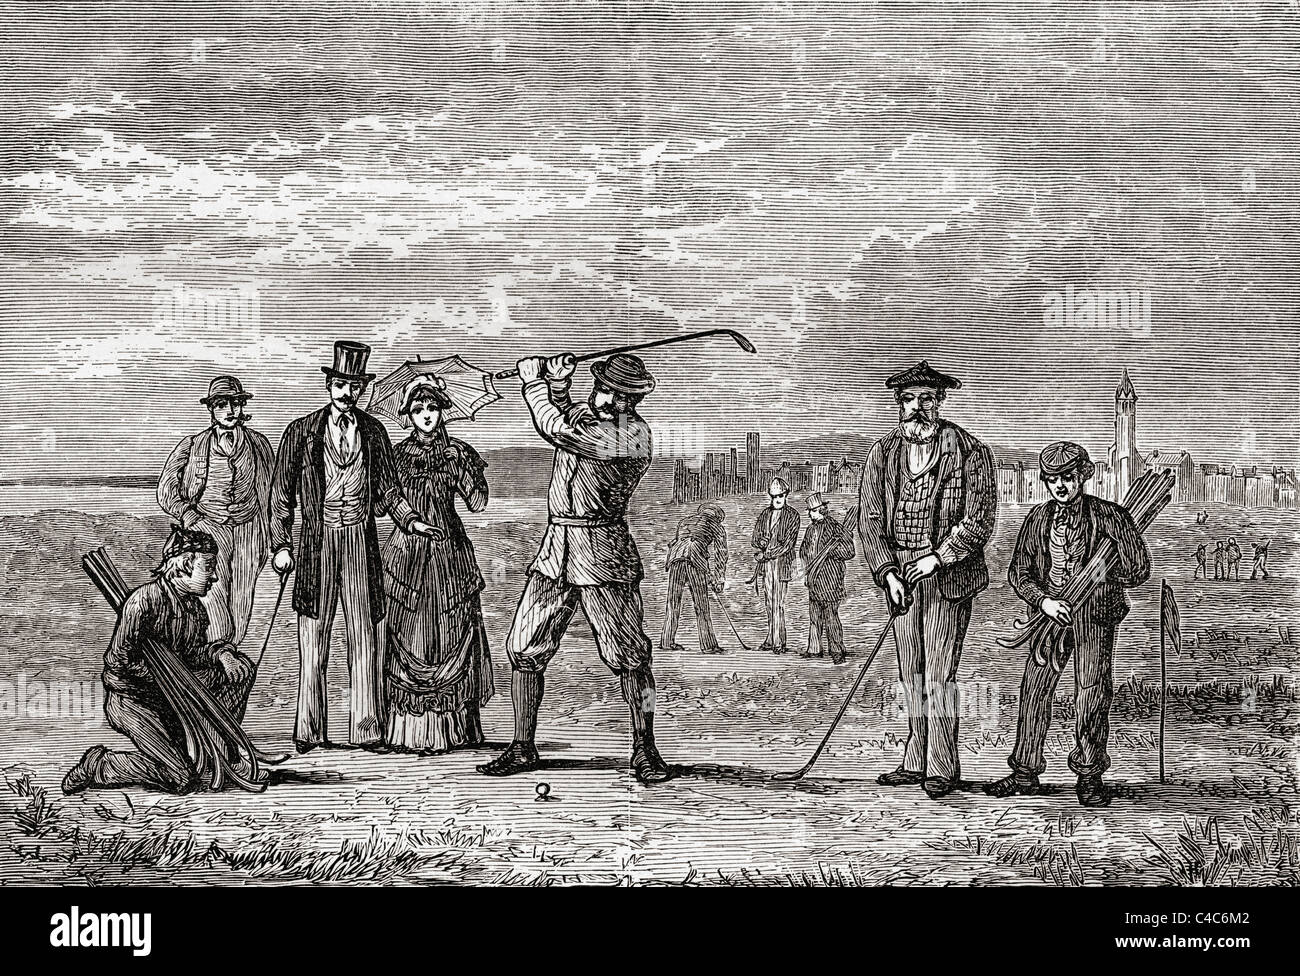 Golfers on St Andrews Links in the town of St Andrews, Fife, Scotland in the late 19th century. - Stock Image